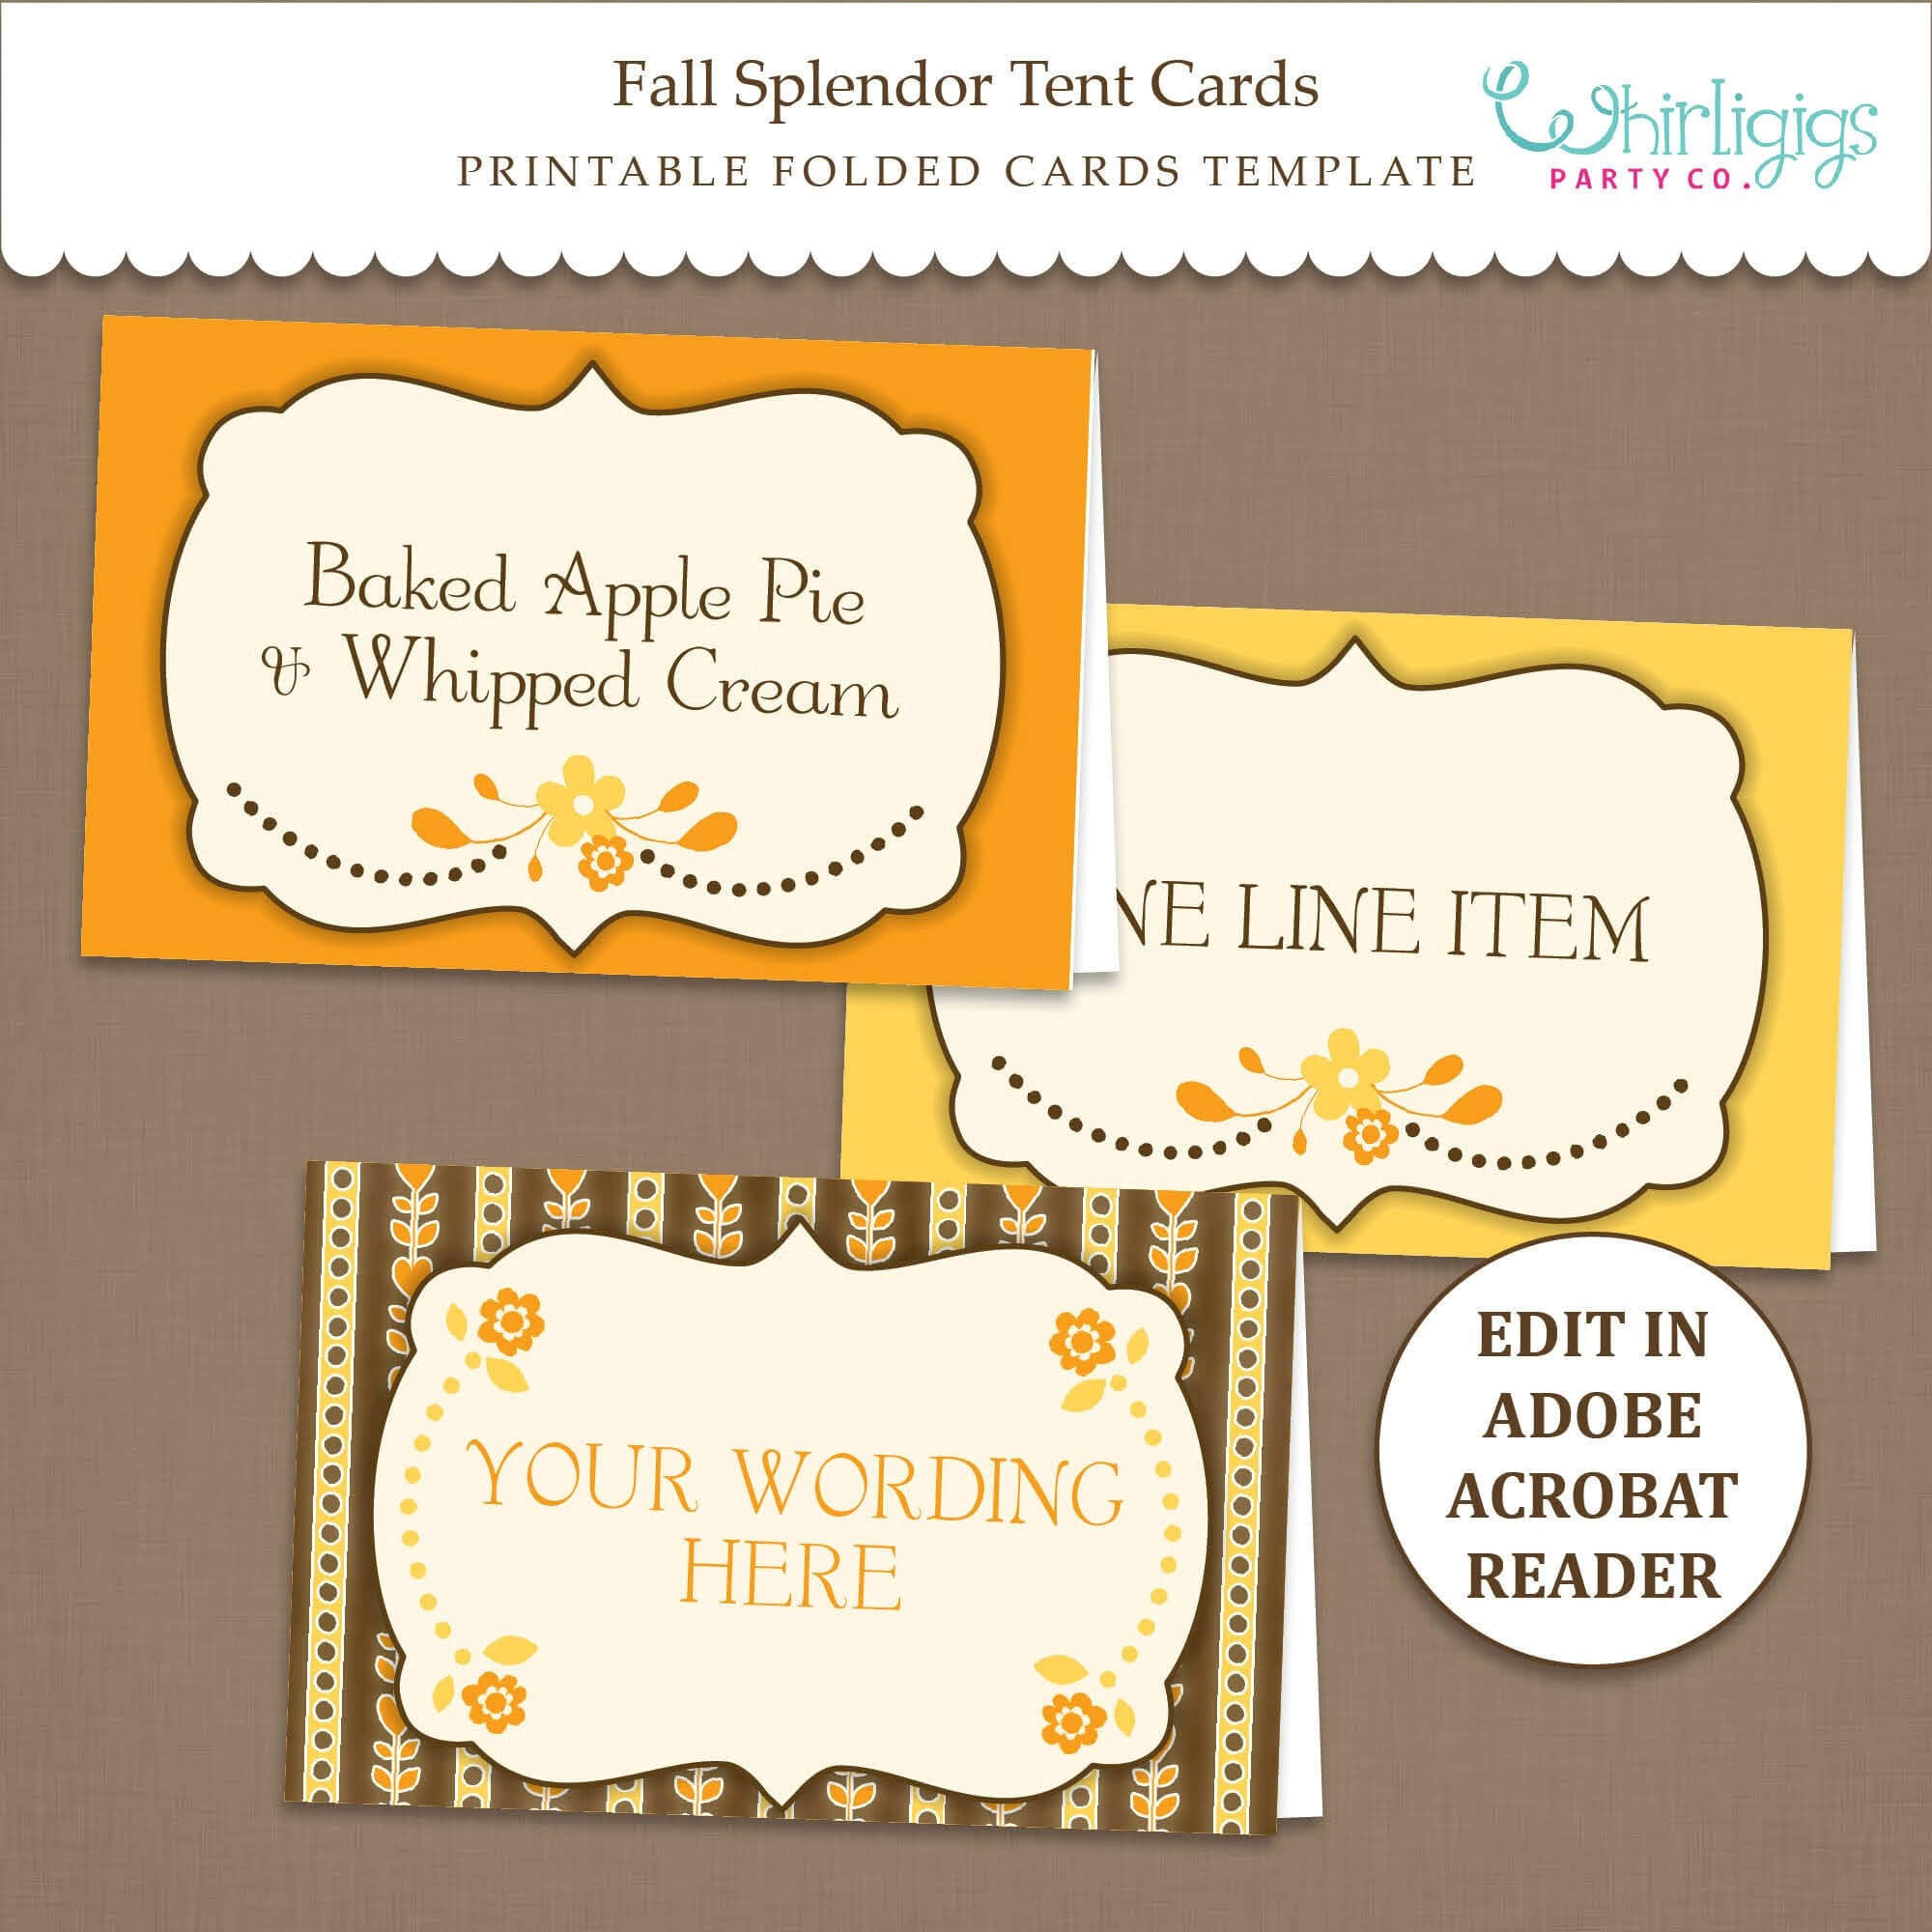 Fall Tent Card Template - Thanksgiving Placecards - Editable - Printable -  Pdf File - Fall Splendor - with Thanksgiving Place Cards Template